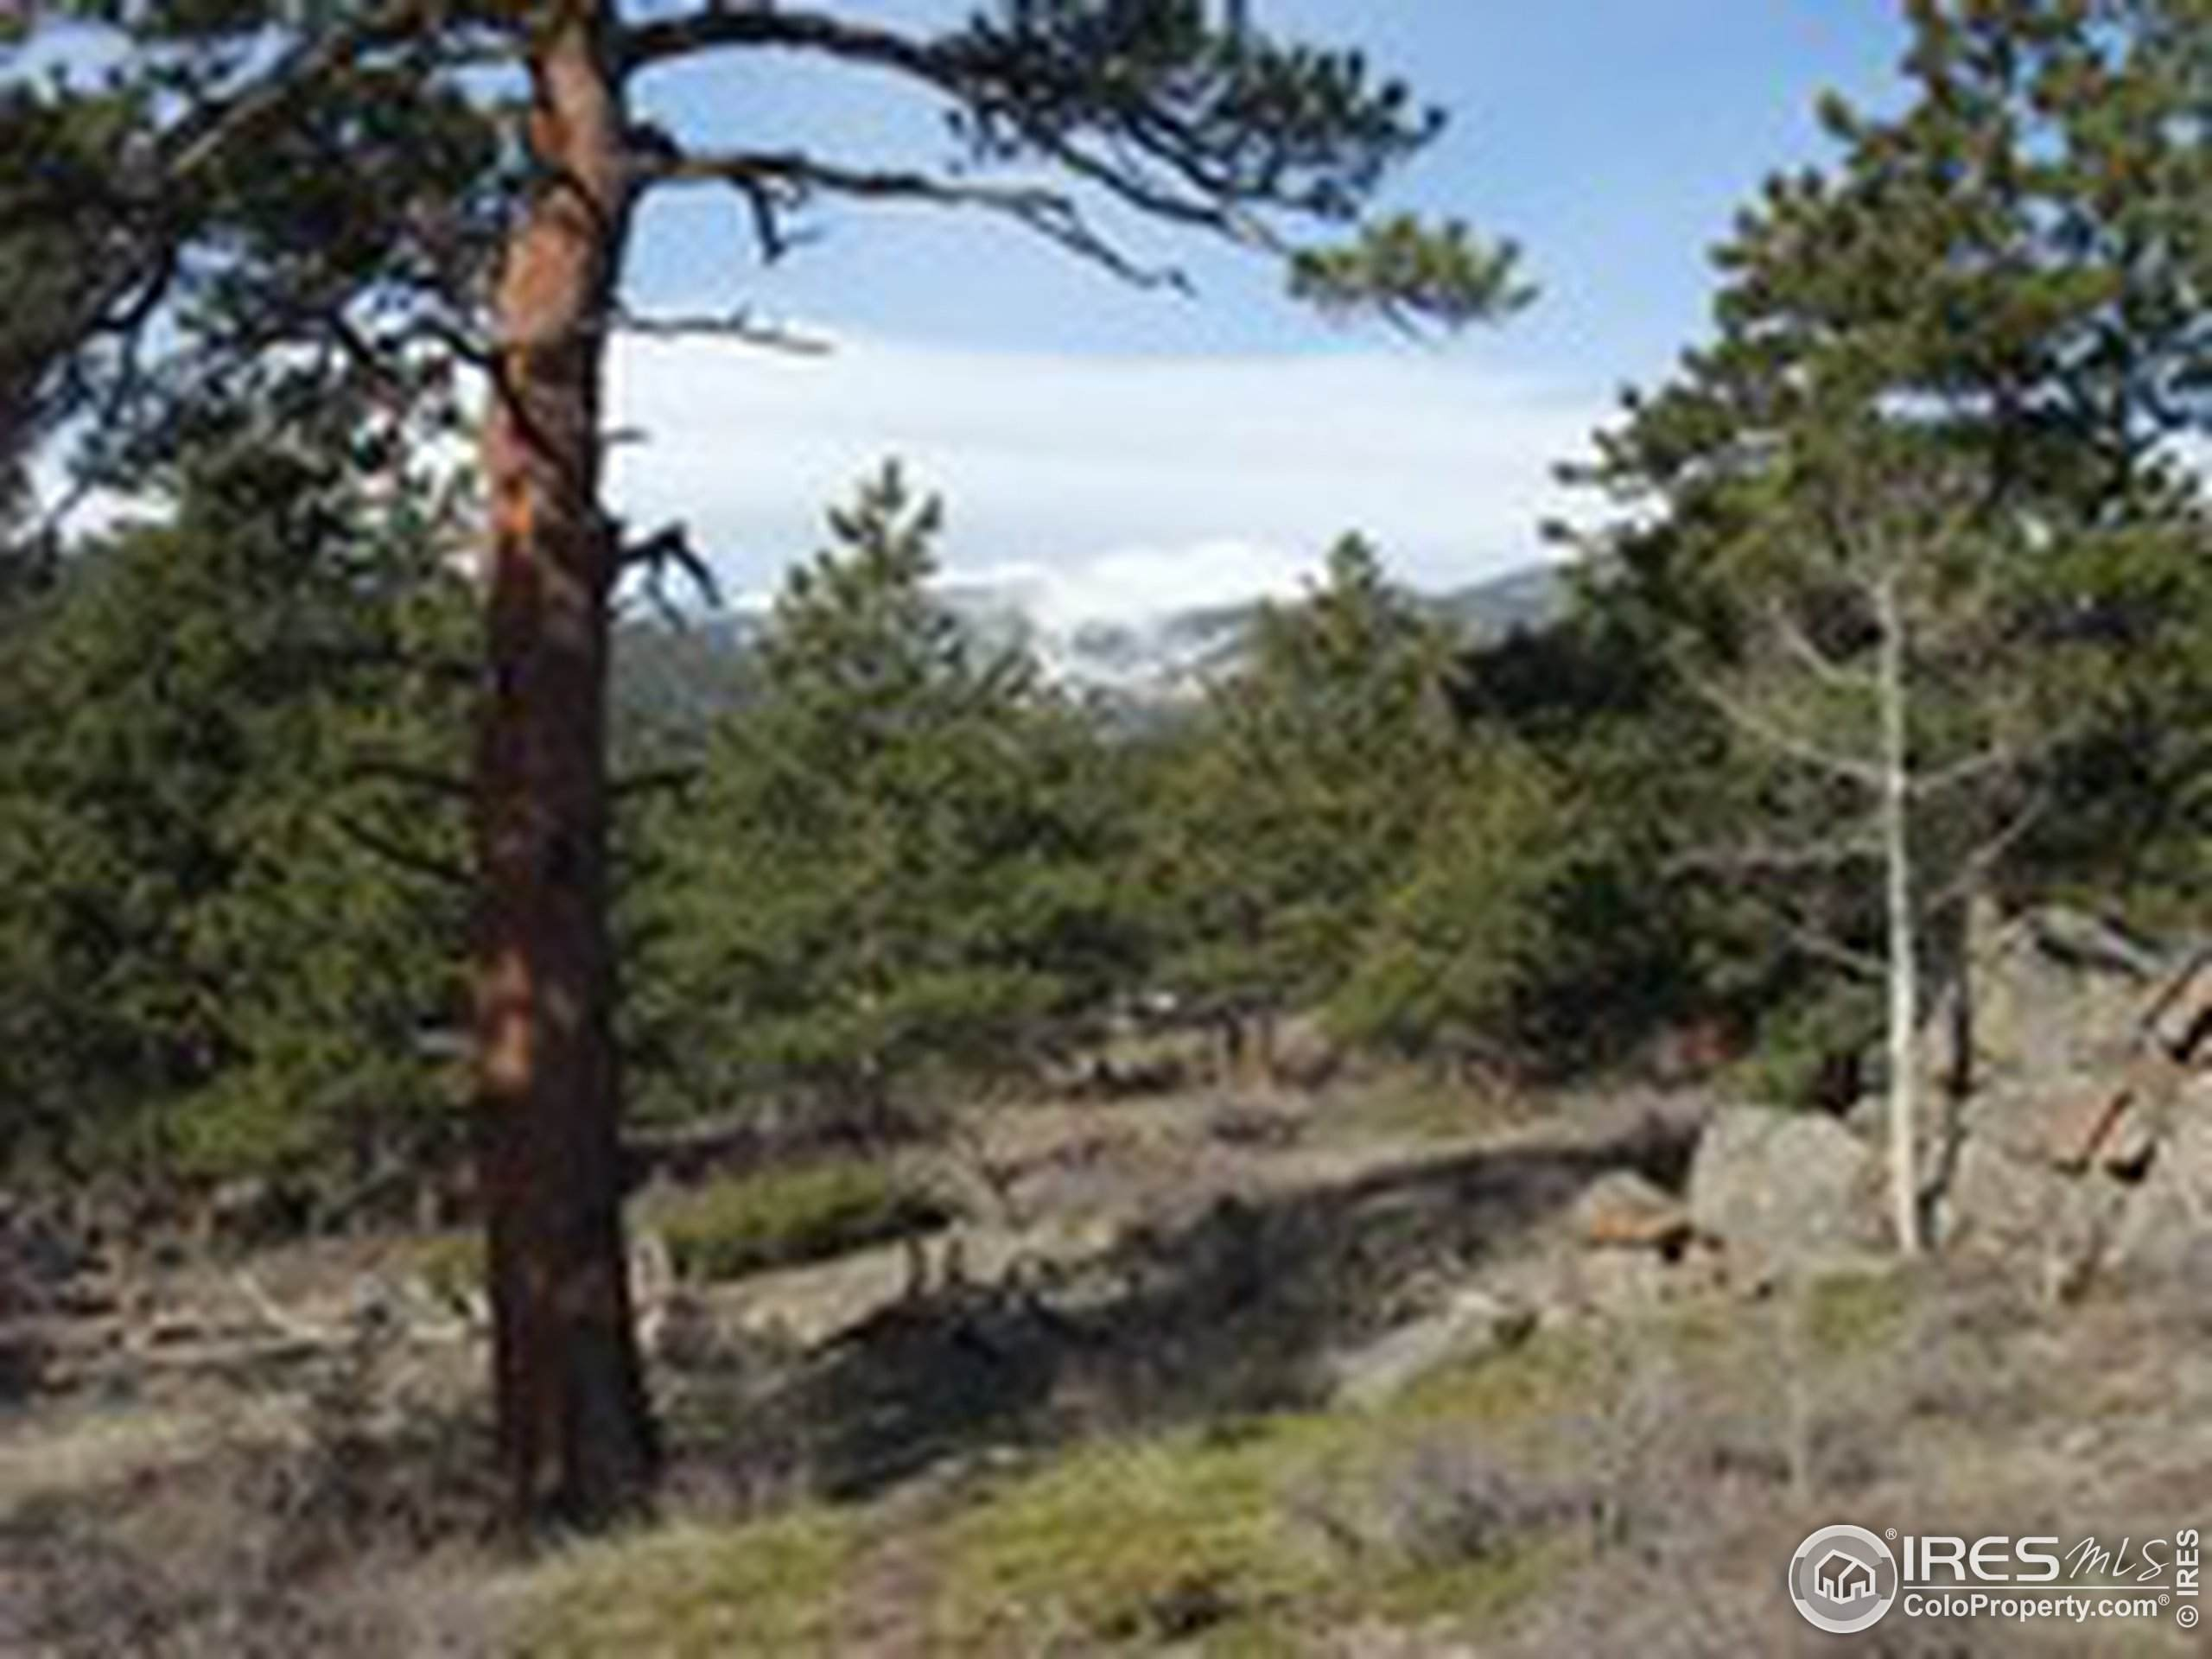 721 Waterglen Dr H-130, Fort Collins, CO 80524 (MLS #921447) :: Fathom Realty